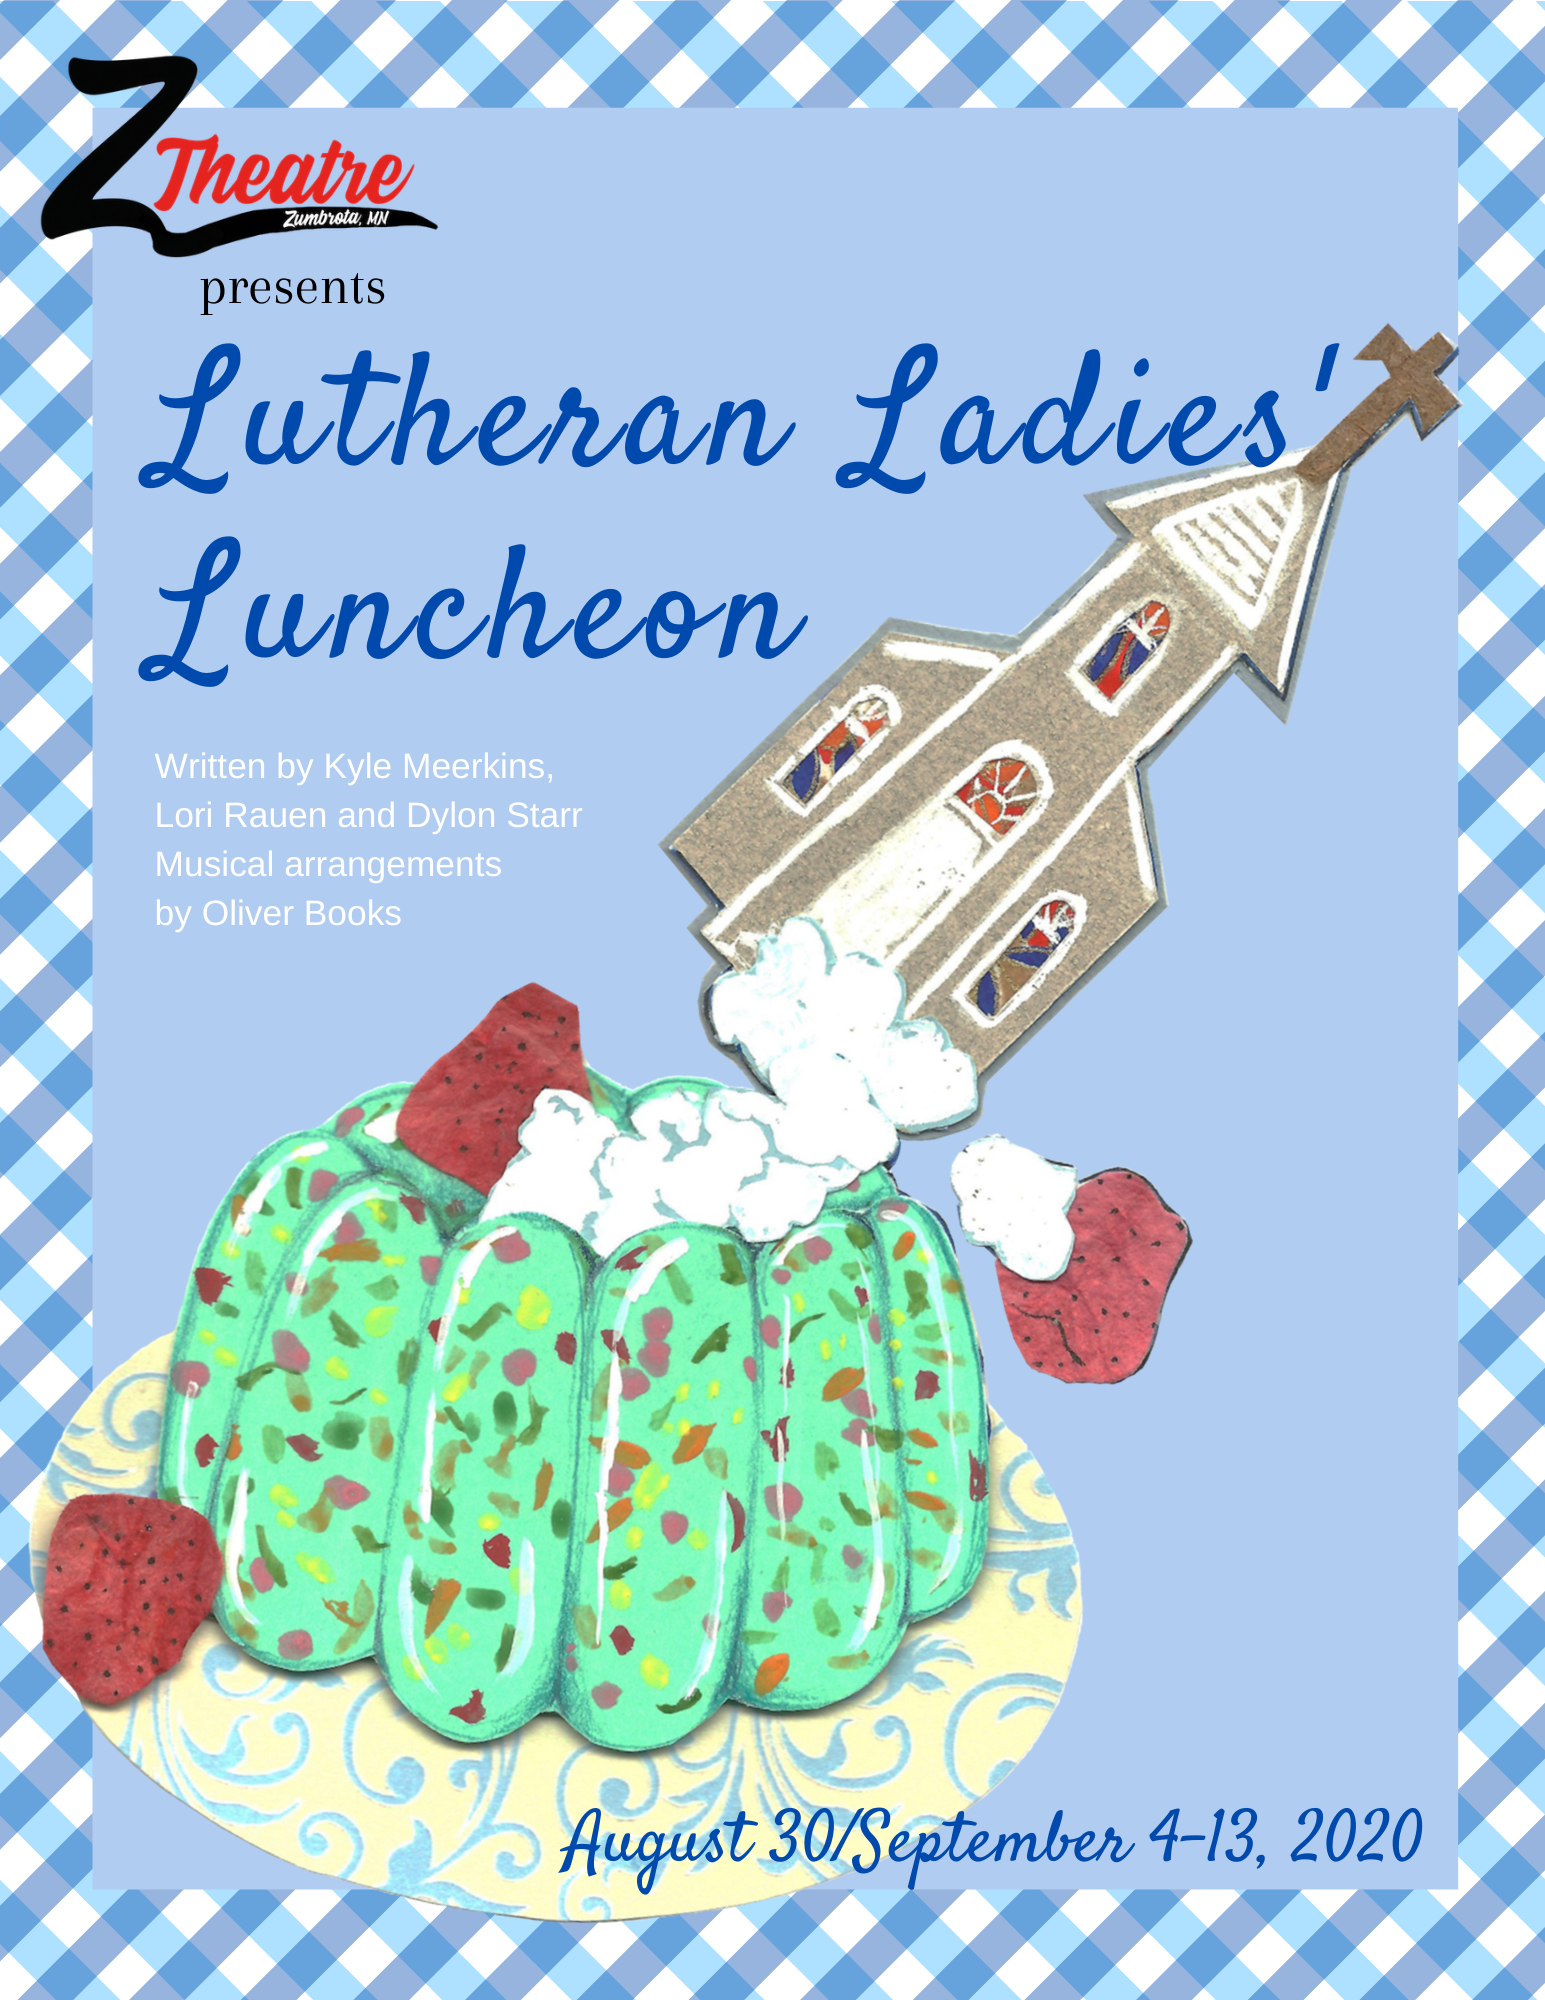 zumbrota minnesota theater theatre local starr meerkins rauen lutheran ladies luncheon church